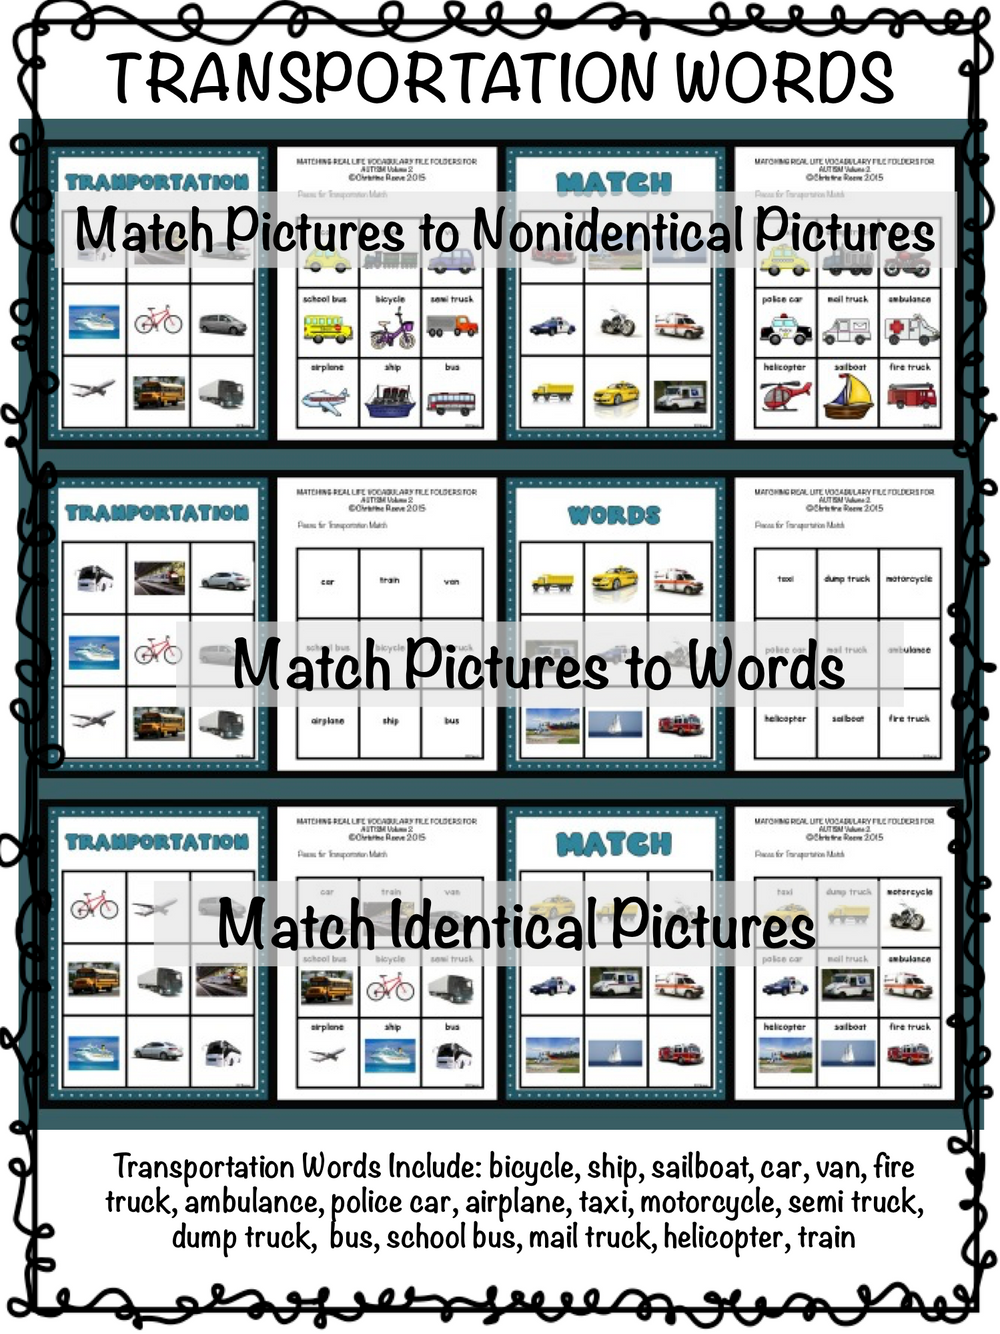 Real Life Photographic Vocabulary Matching File Folders 2 for Special Education With Matching Pictures and Words - Autism Classroom Resources